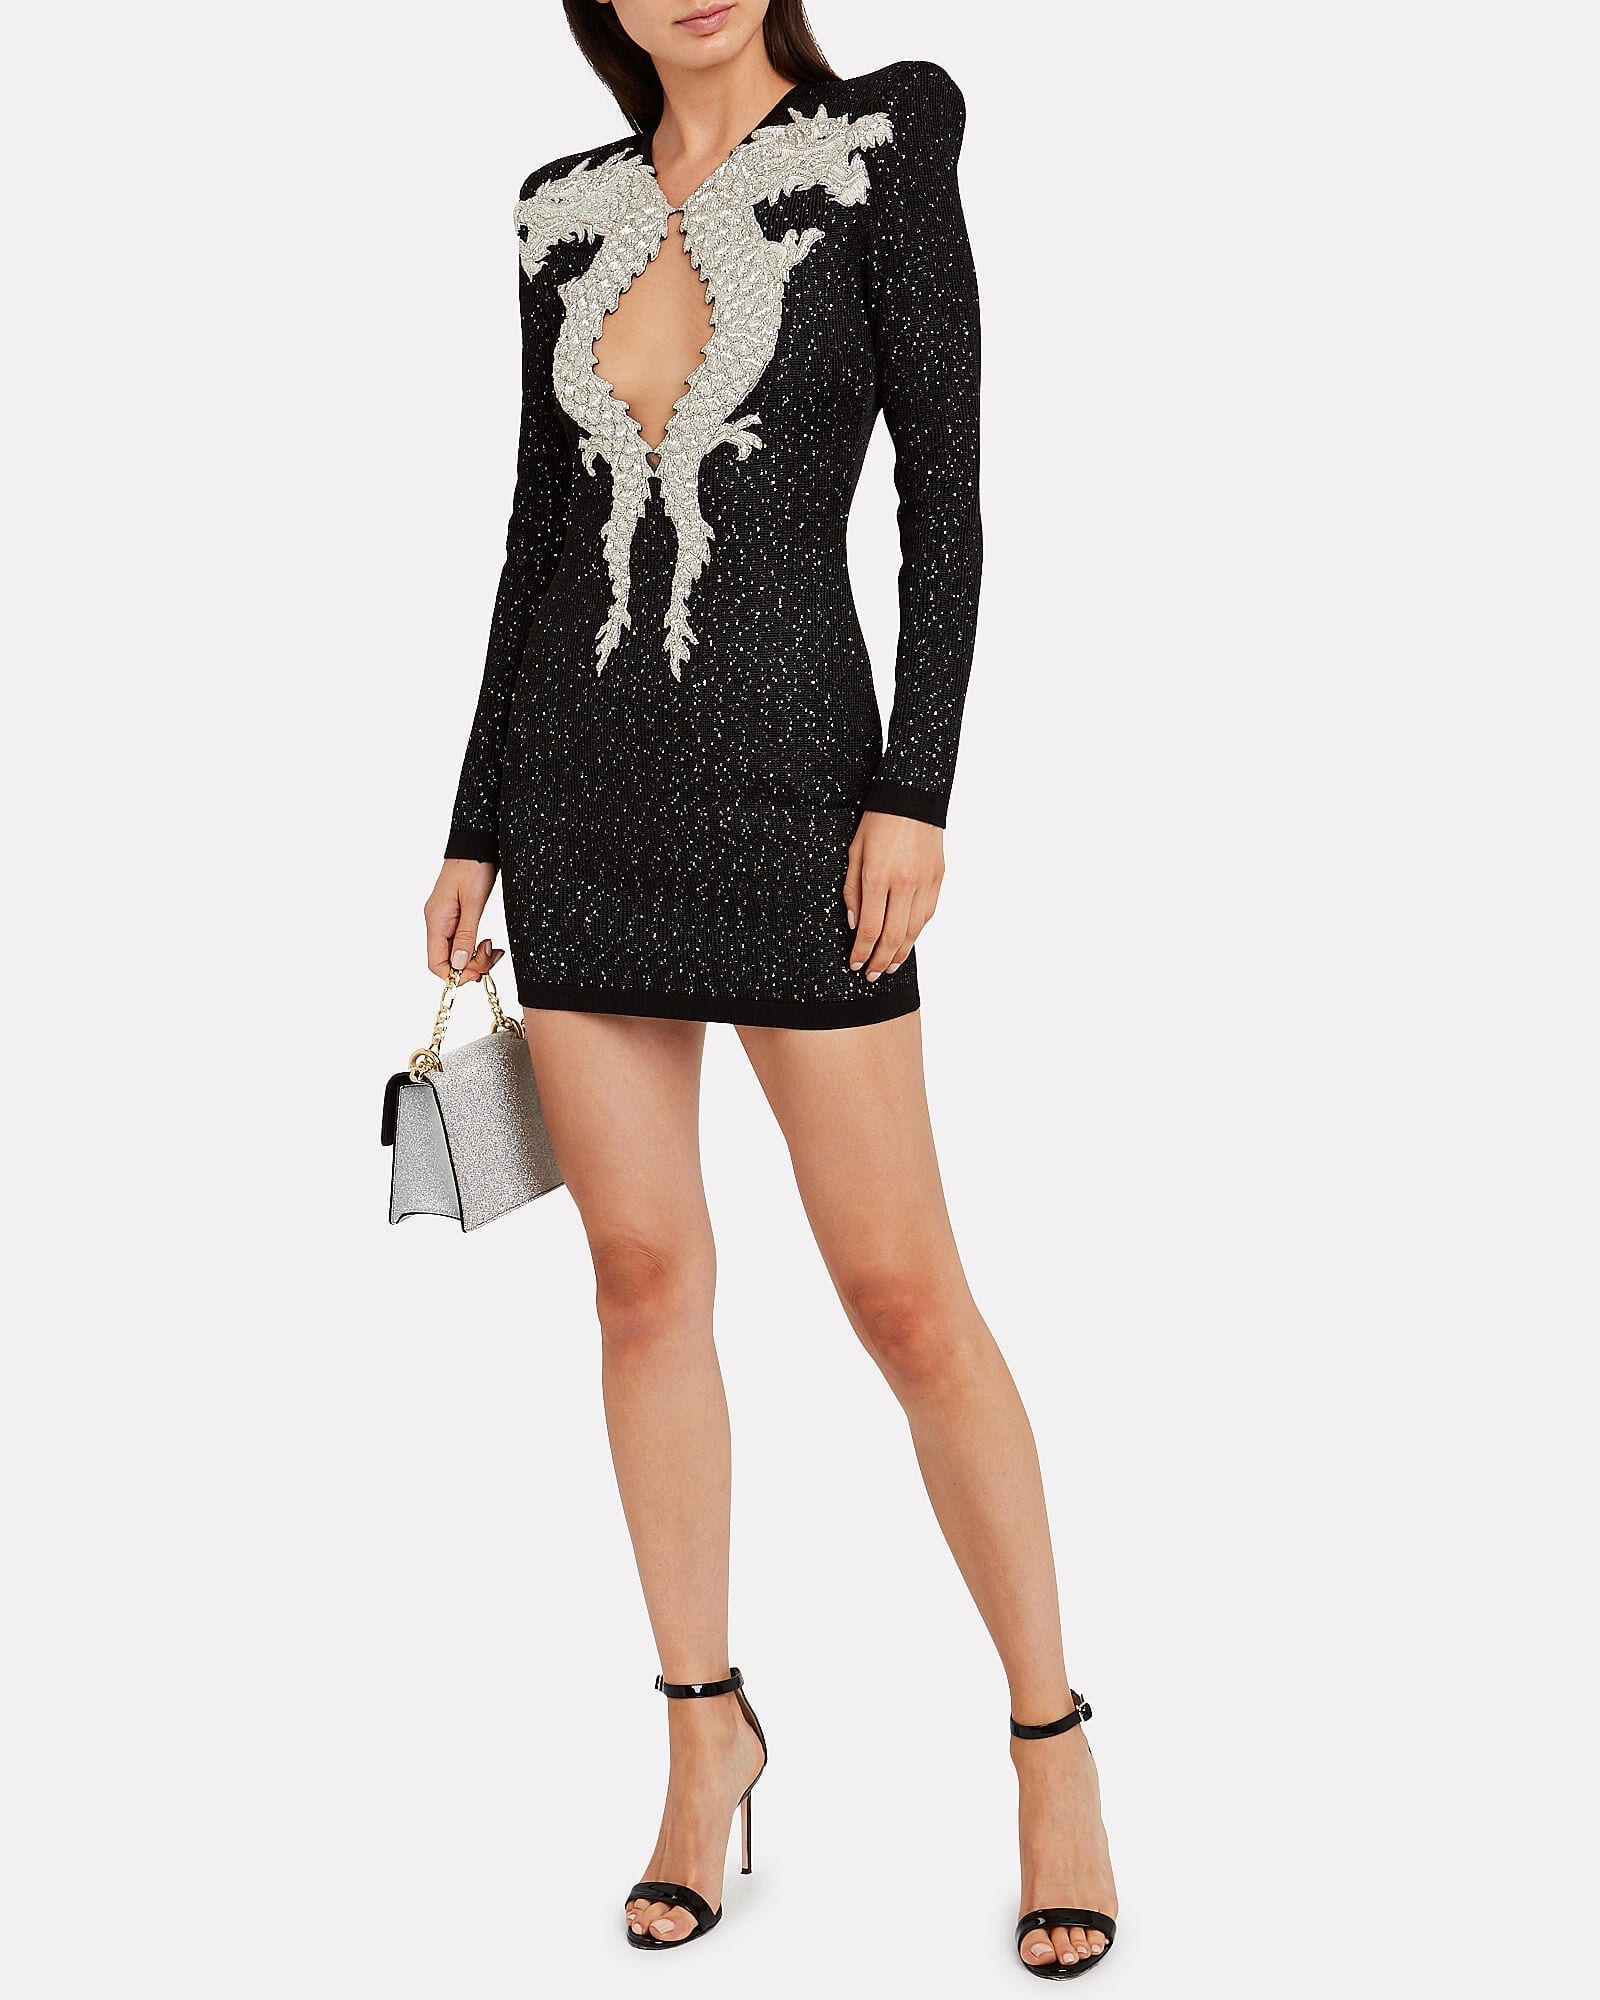 BALMAIN Dragon Embellished Knit Dress